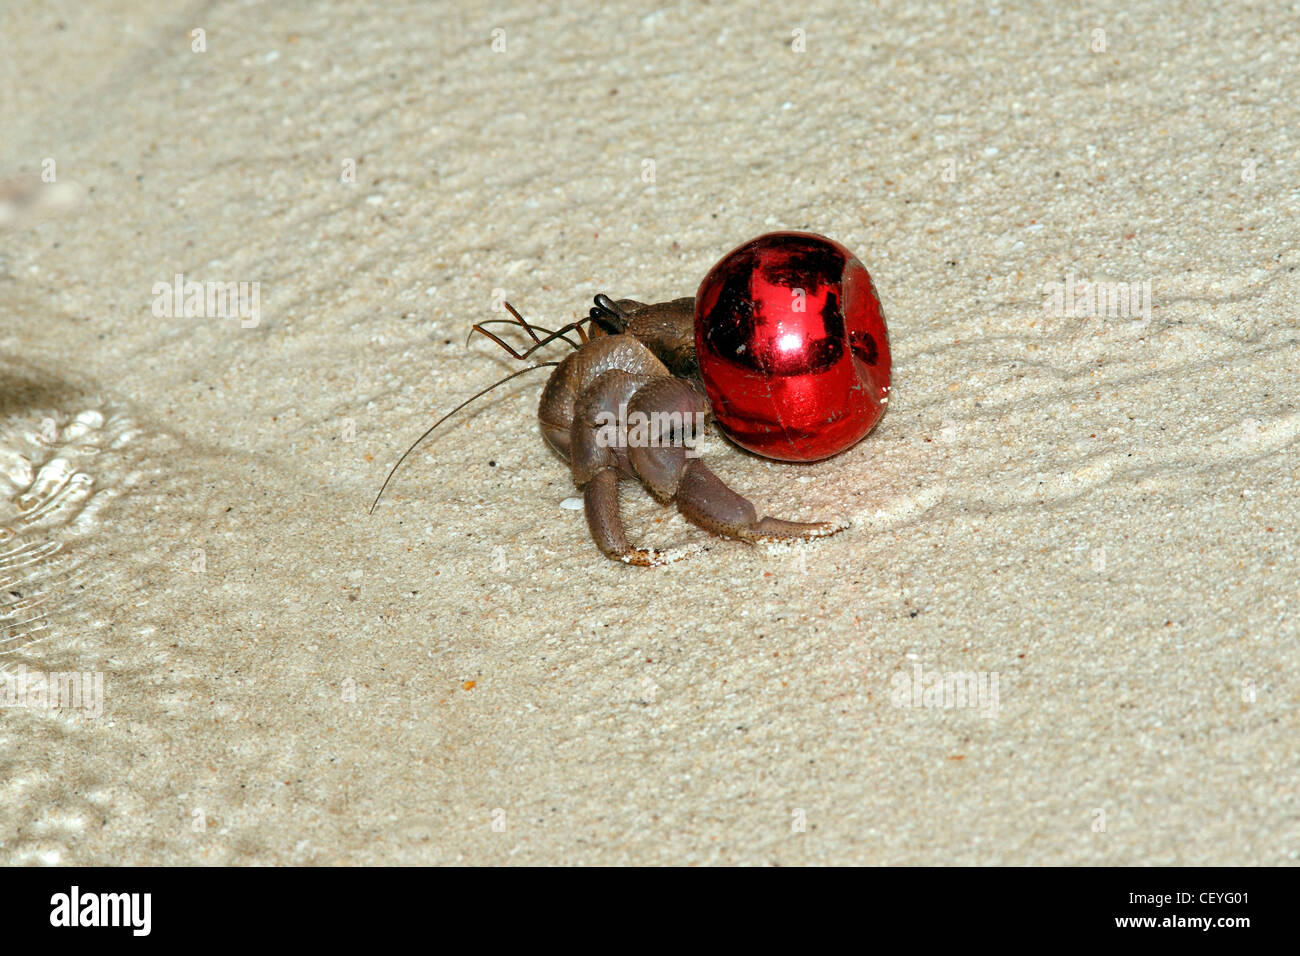 Terrestrial hermit crab Coenobita, is using a red bottle cap as a protective shell instead of the usual mollusk - Stock Image